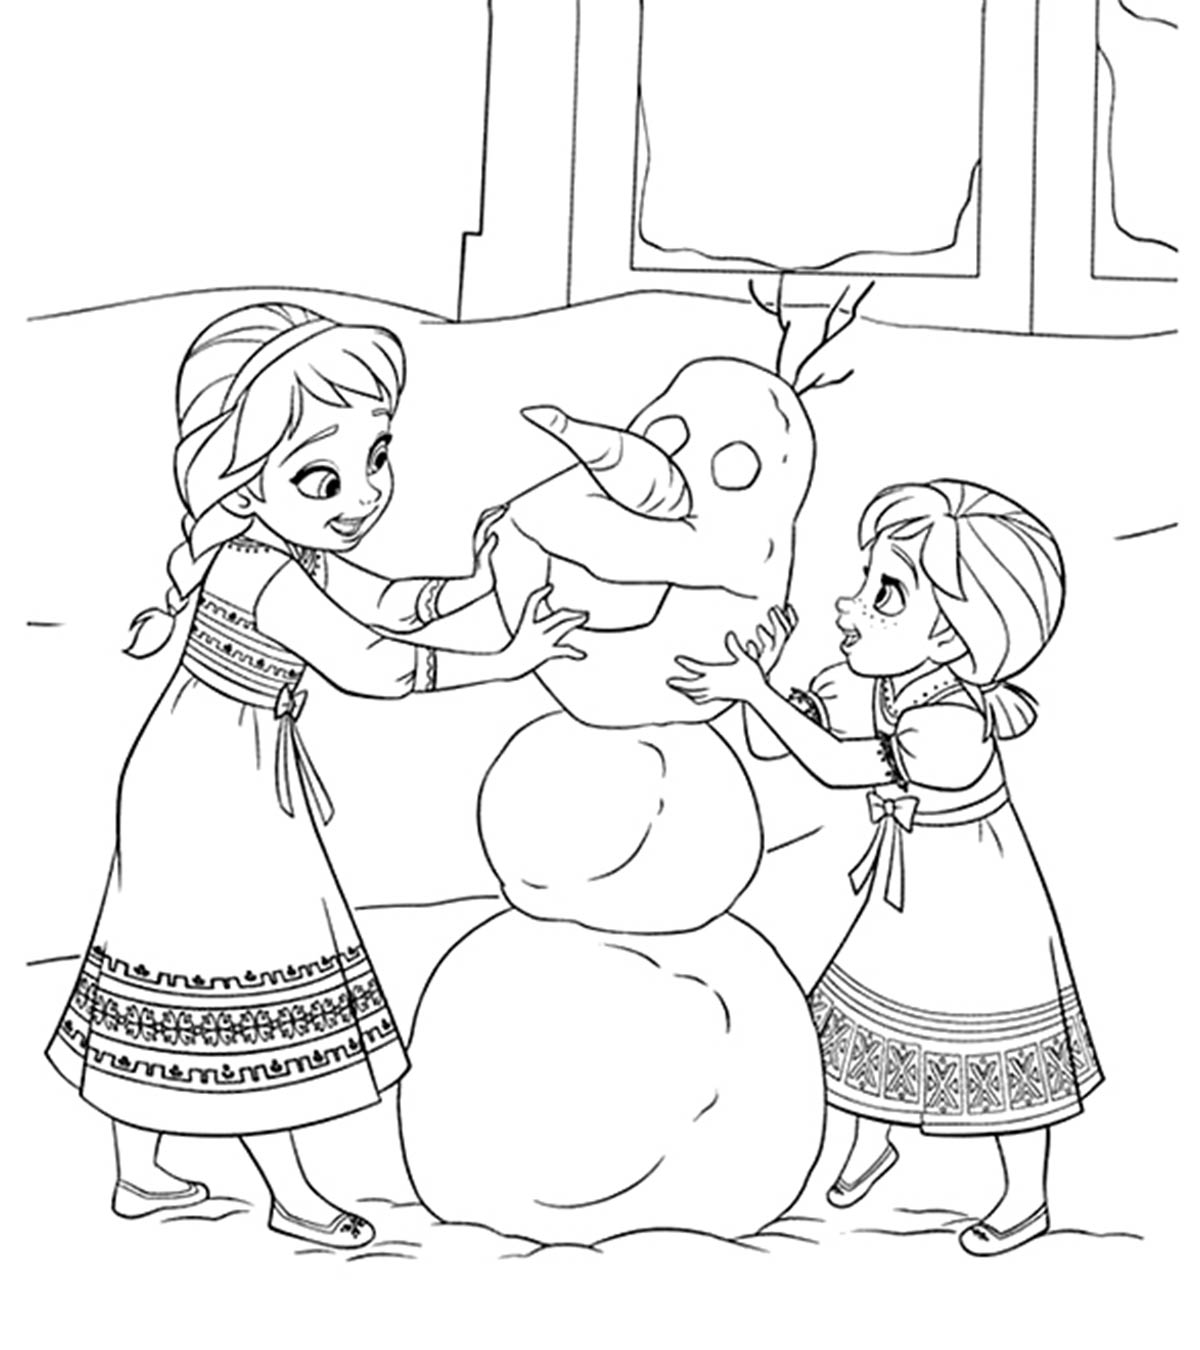 frozen coloring images free printable coloring pages frozen 2015 lunawsome coloring frozen images